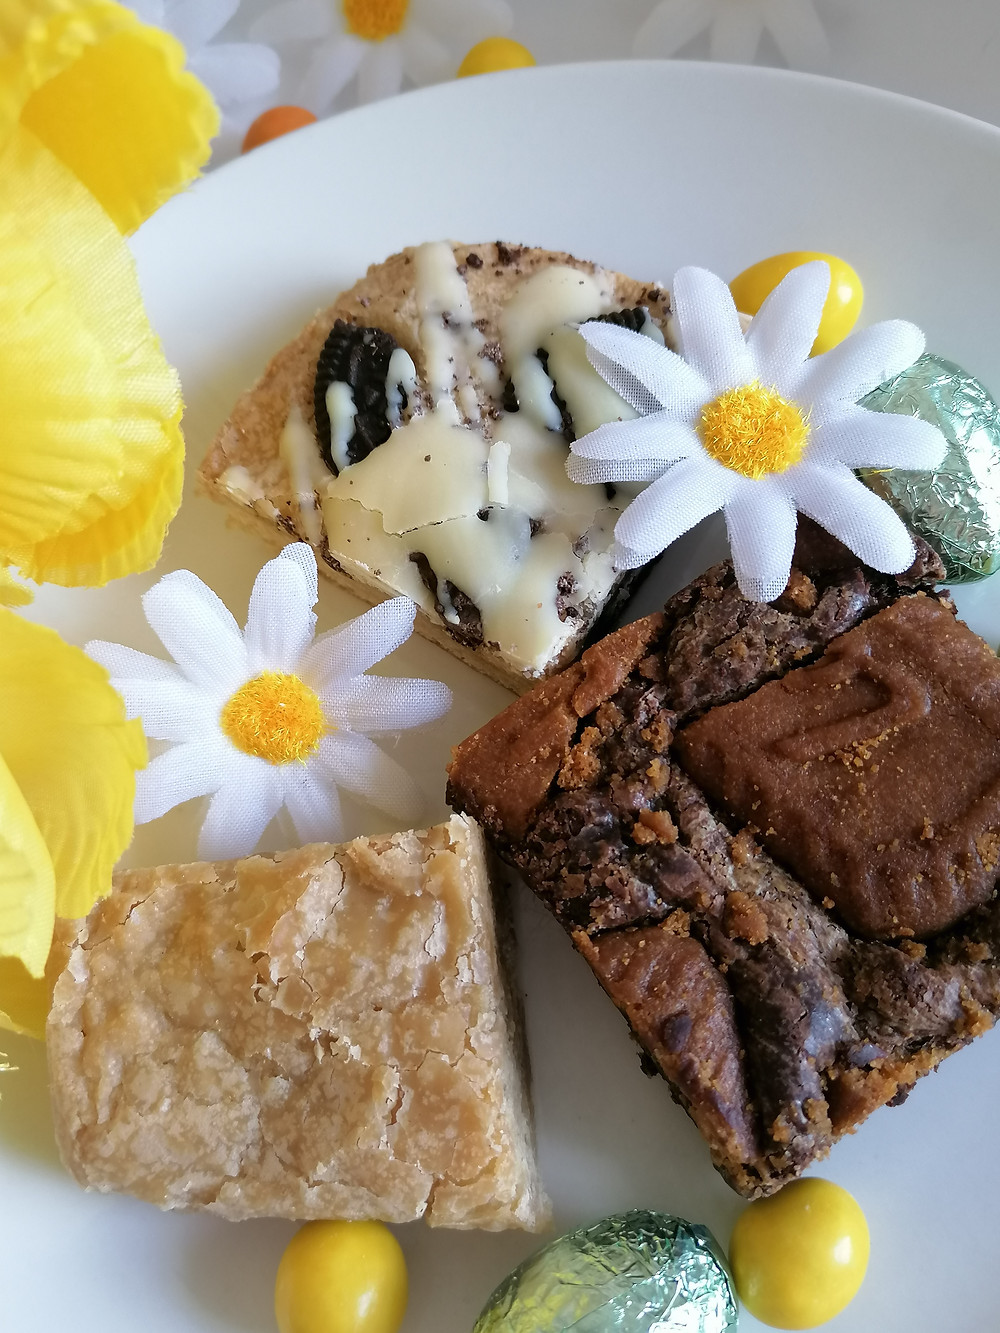 Ditto Bakes brownies and blondies on a white plate with yellow daises